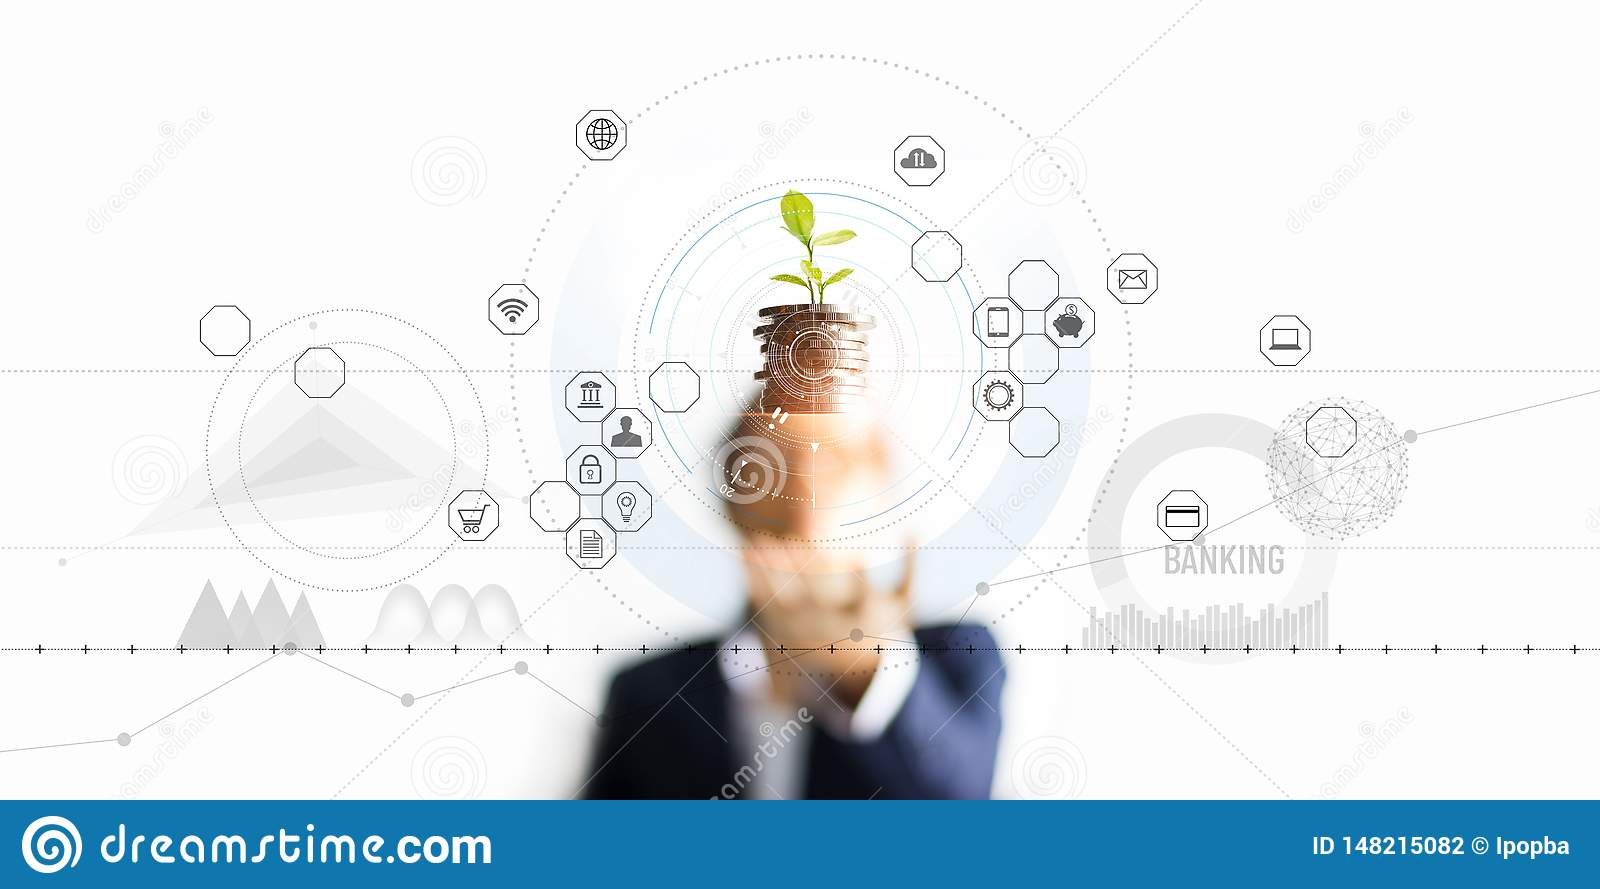 .Businessman holding a tree sprout growing on coins, abstract growth investing. Finance and icon customer, banking network